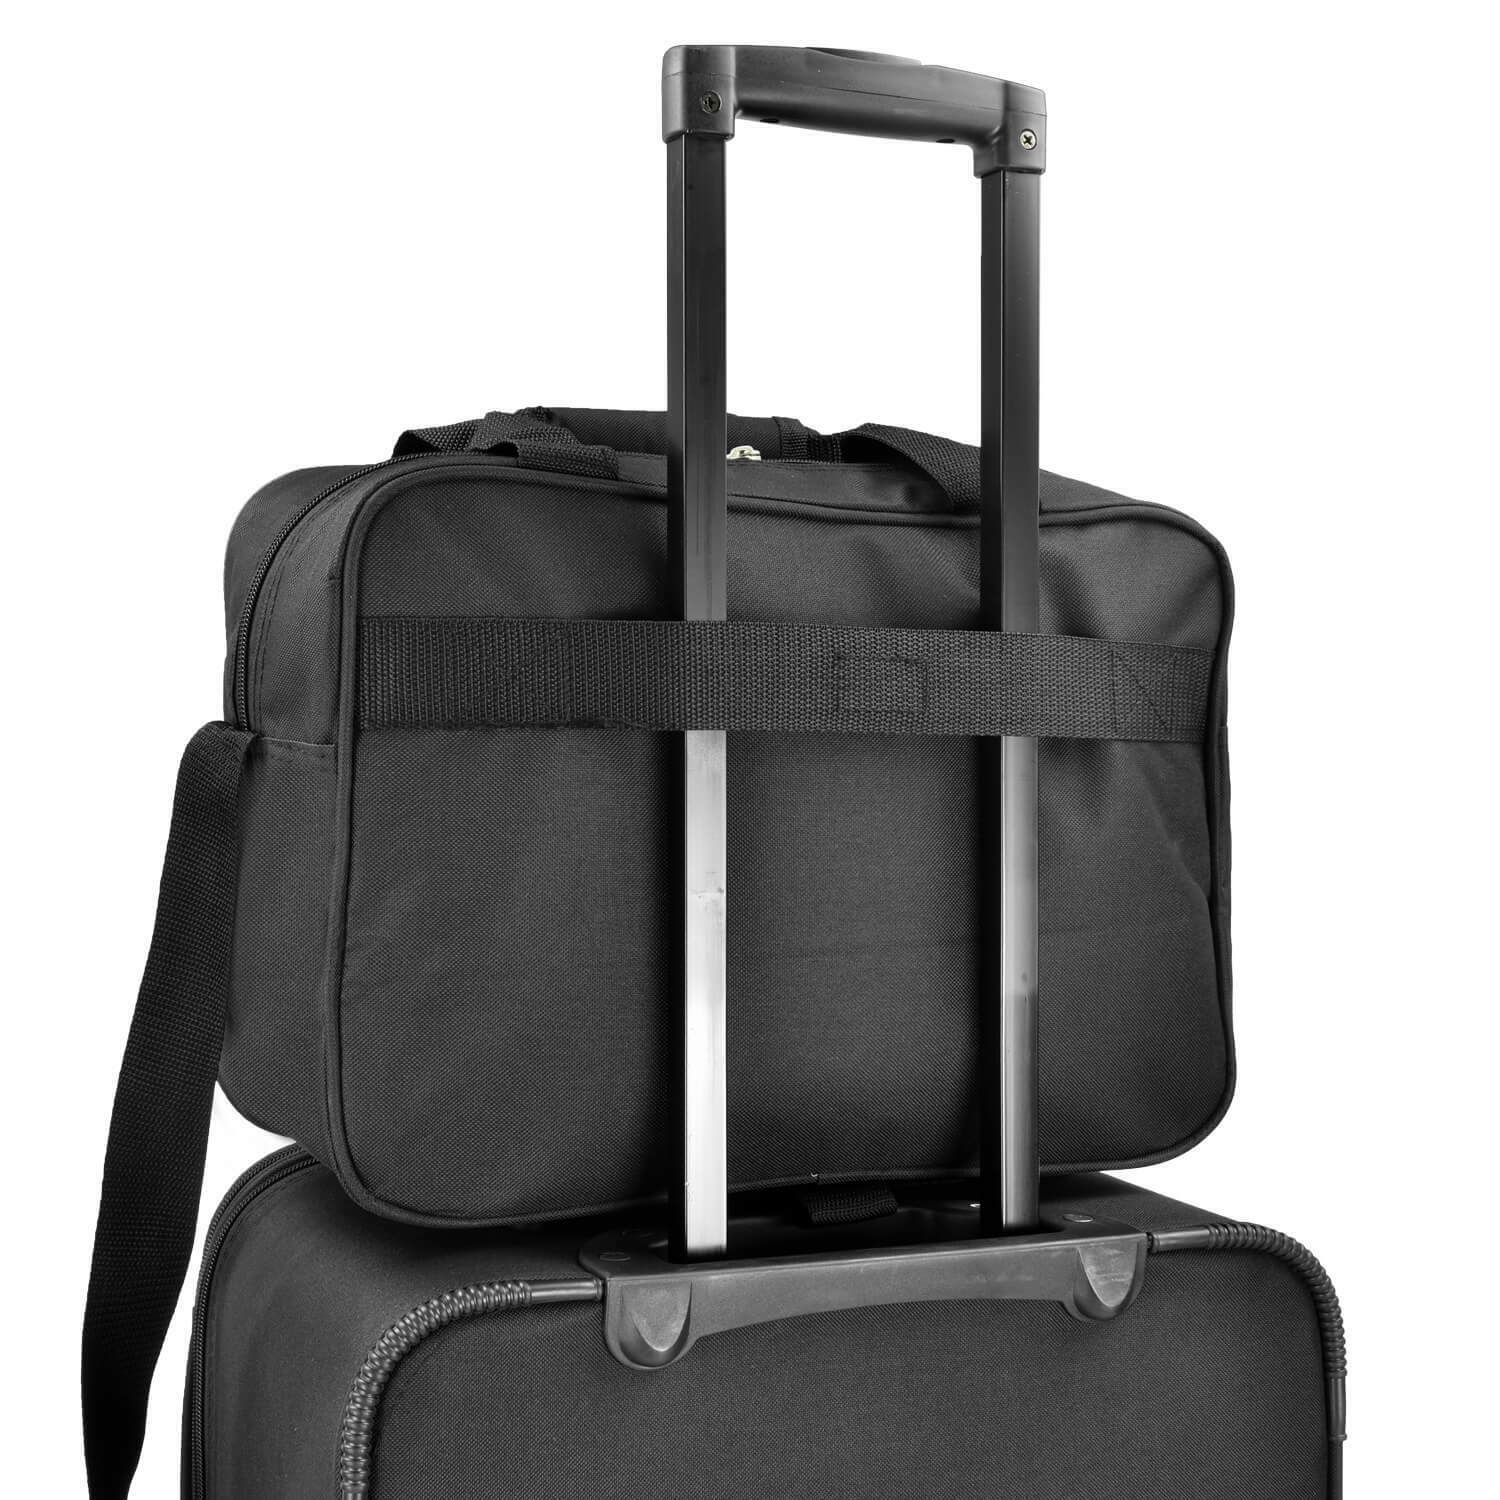 Us Traveler Black New Yorker 3 Piece Expandable Rolling Luggage Suitcase Bag Set For Sale Online